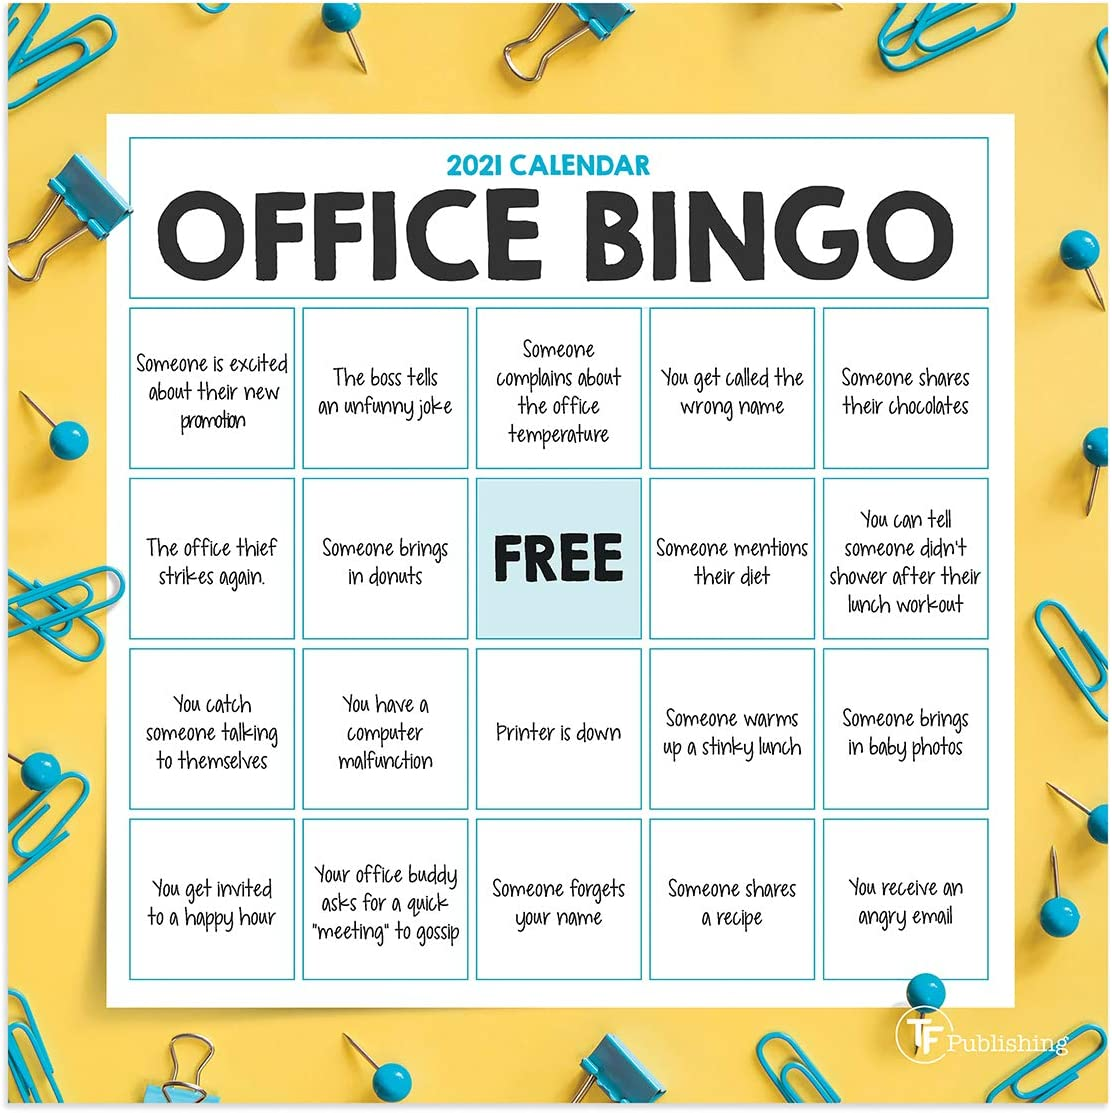 "TF PUBLISHING 2021 Office Bingo Mini Wall Calendar - Photographs with Contacts and Notes Space - Home or Office Planning and Organization in Compact Spaces - Premium Matte Paper 7""x7"""